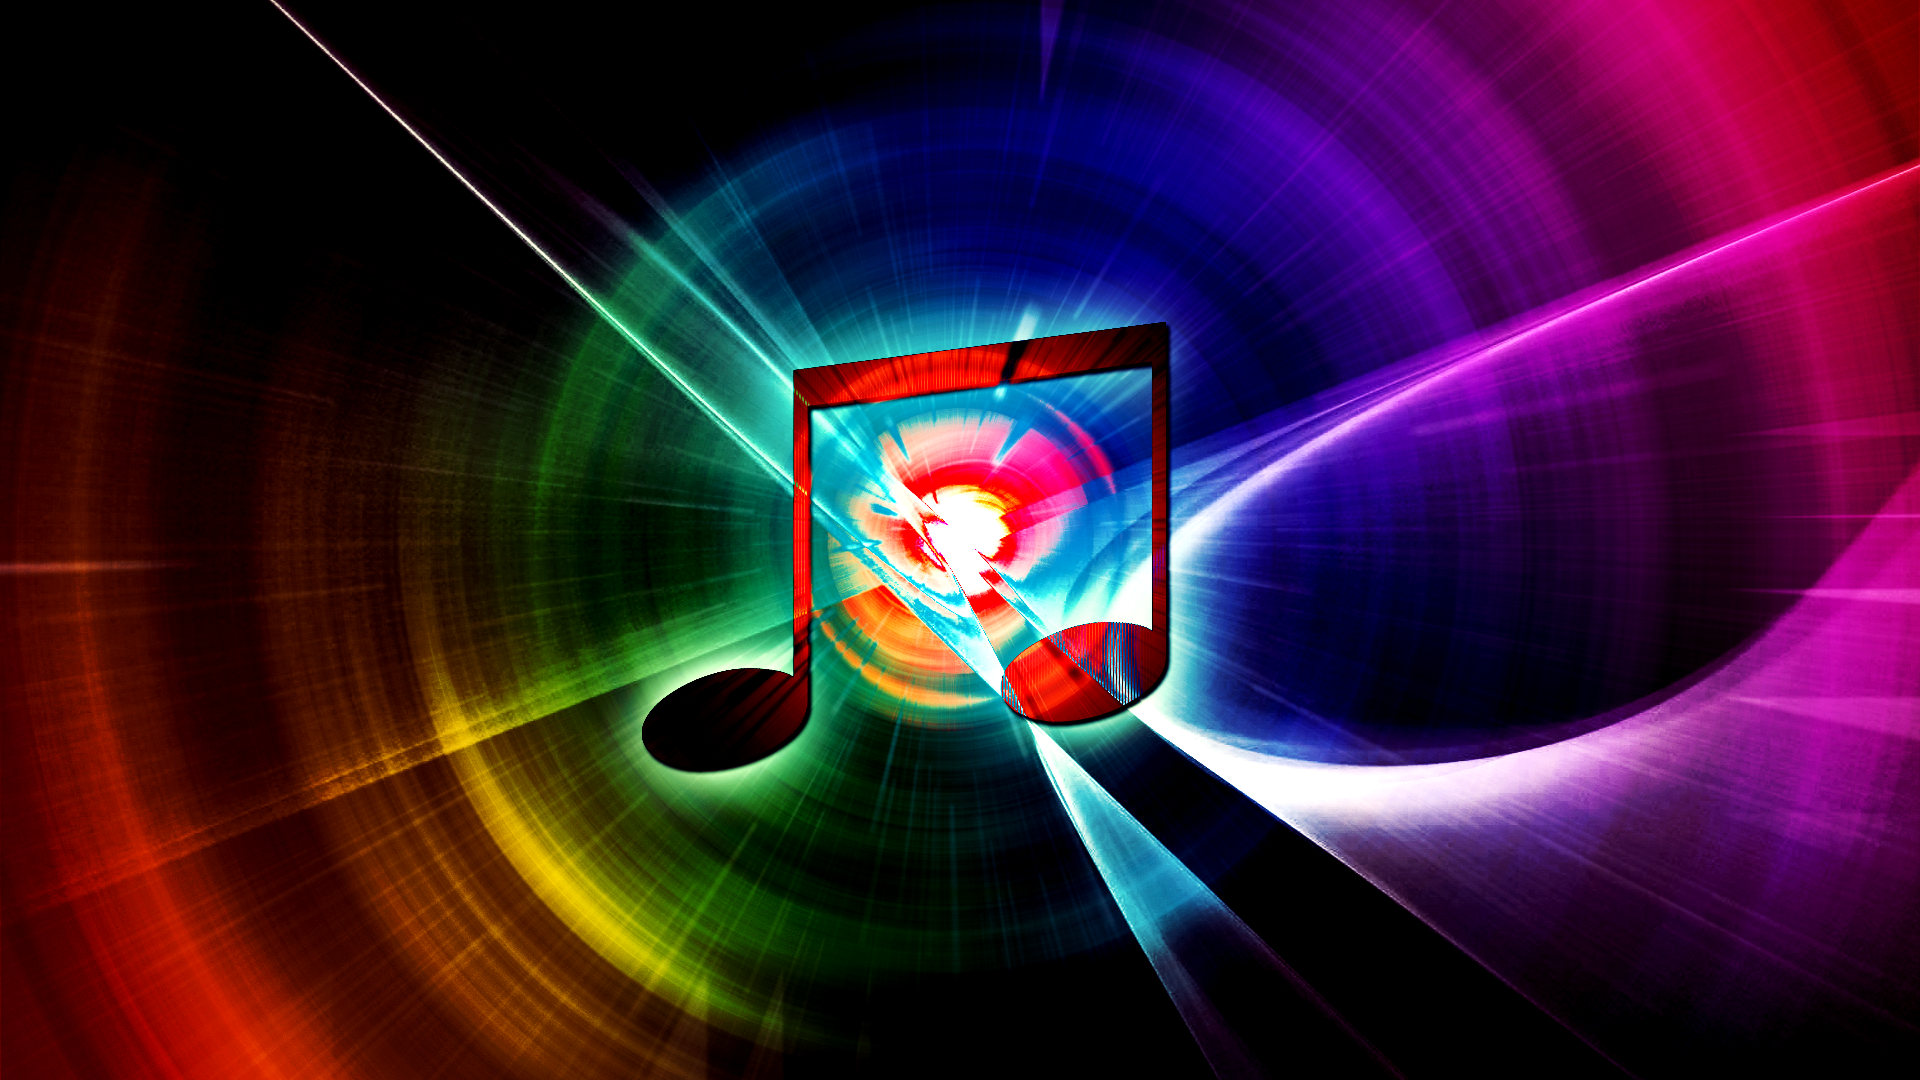 Awesome Music Wallpapers Rainbow music wallpaper 1920x1080